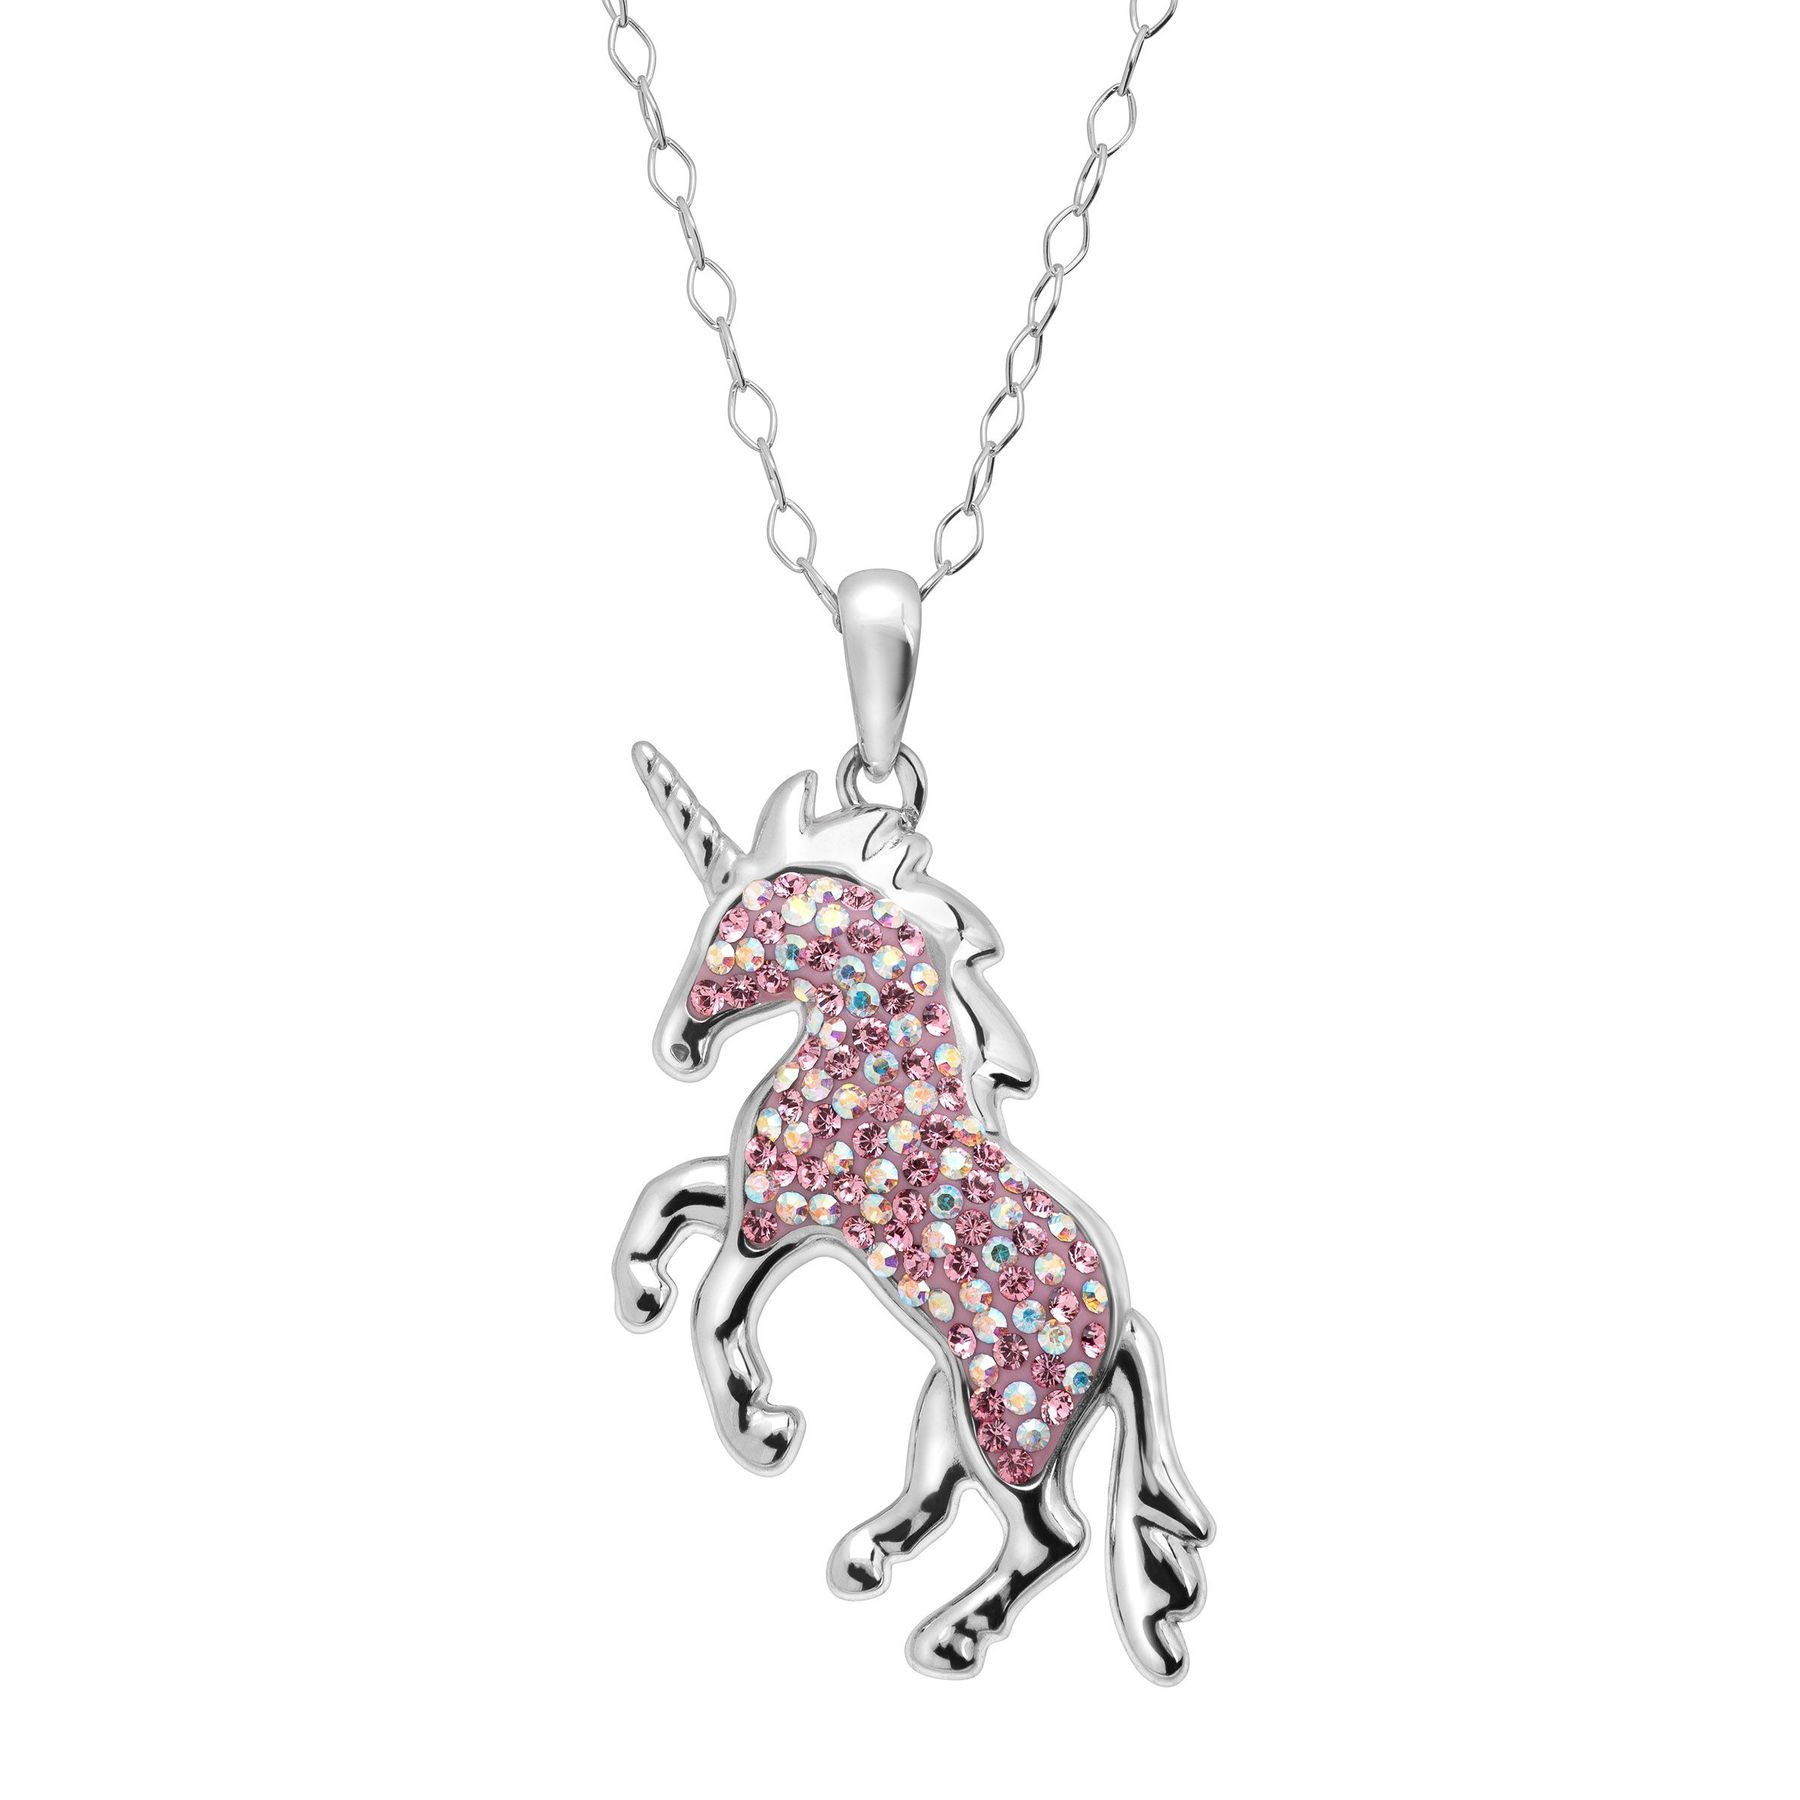 of alchemy england pendant unicorn image